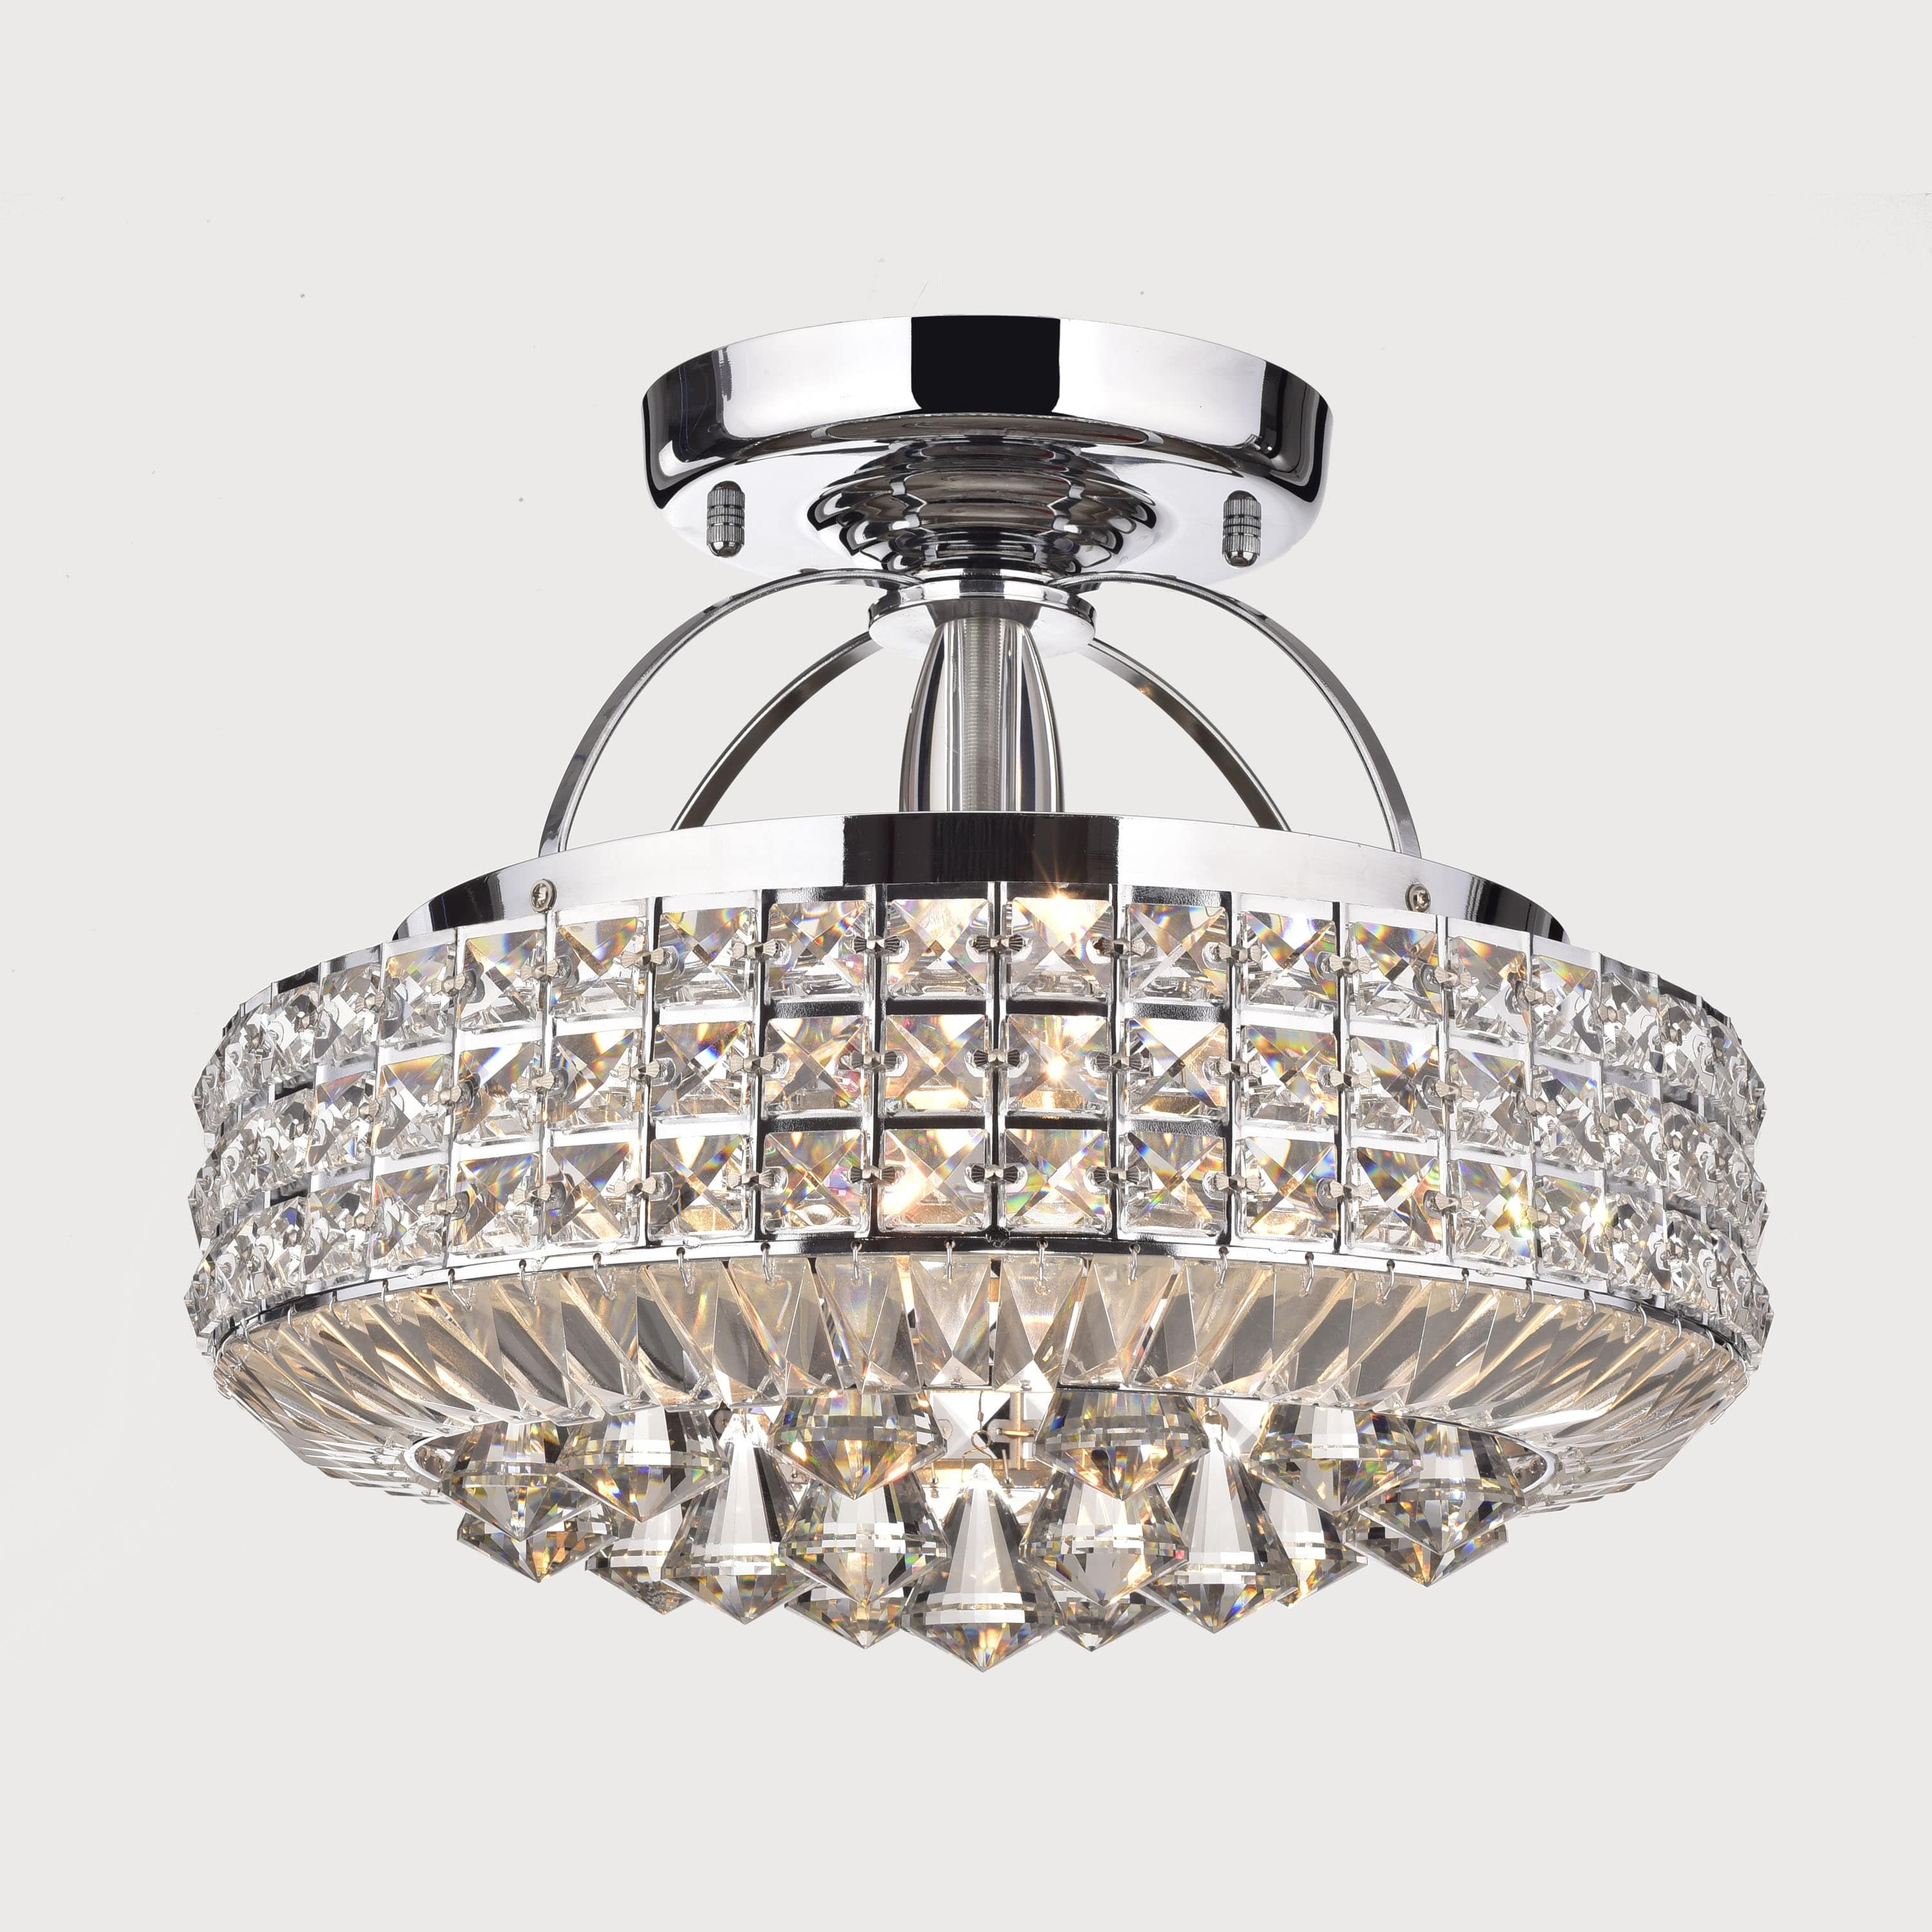 Flush Chandelier Pertaining To Current Jolie Chrome Drum Shade Crystal Semi Flush Mount Chandelier – Free (View 9 of 20)